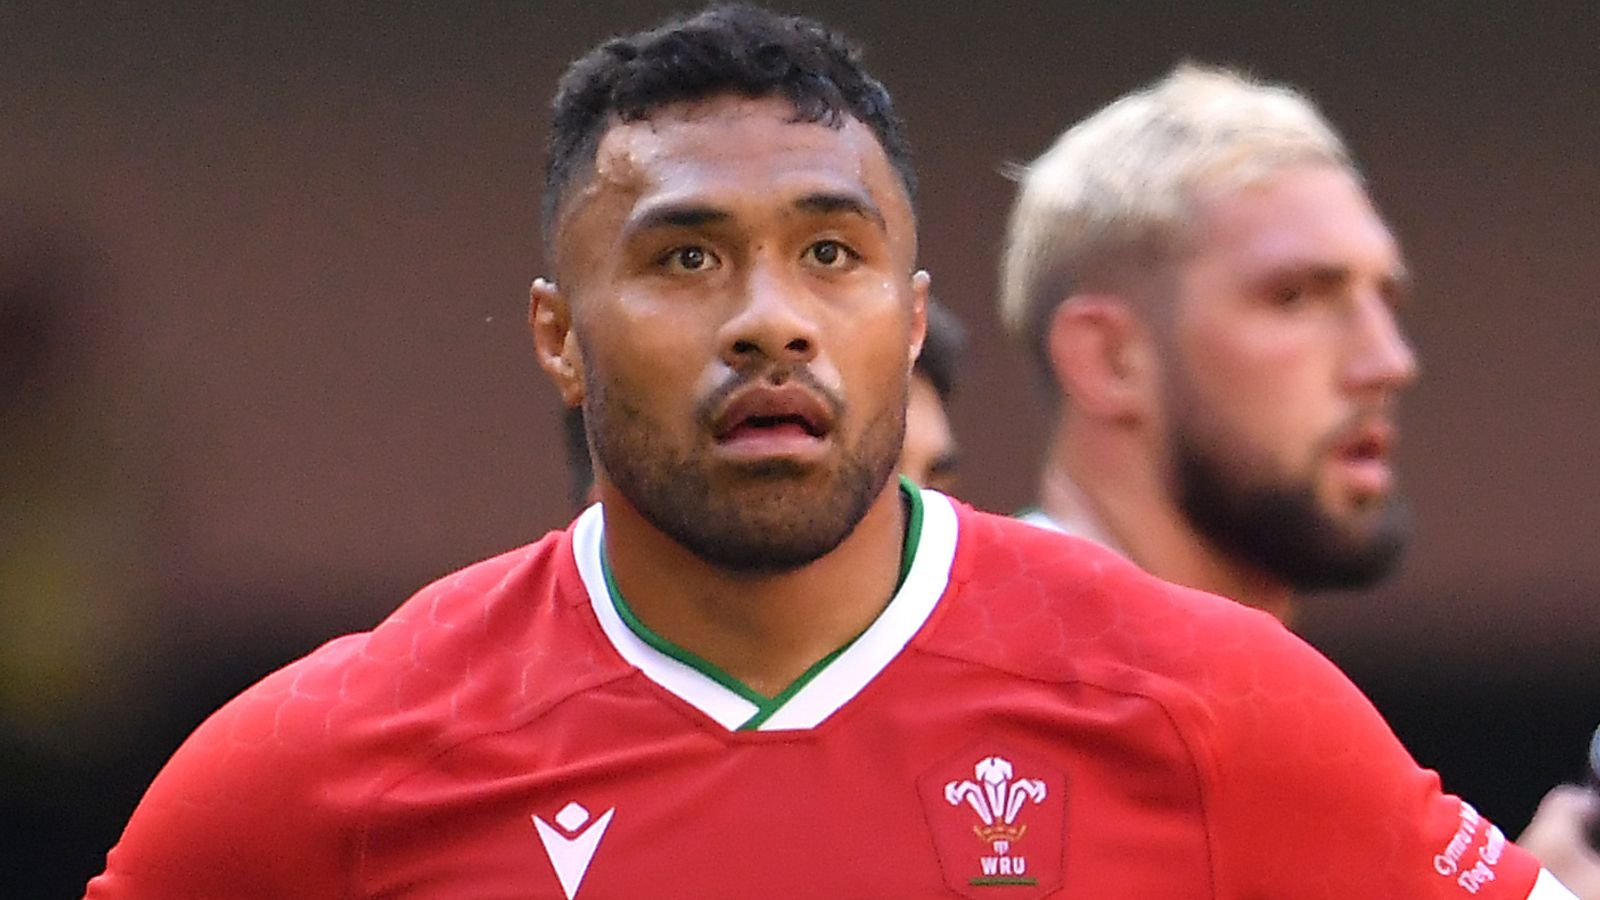 Willis Halaholo: Wales centre to miss All Blacks match after positive Covid test